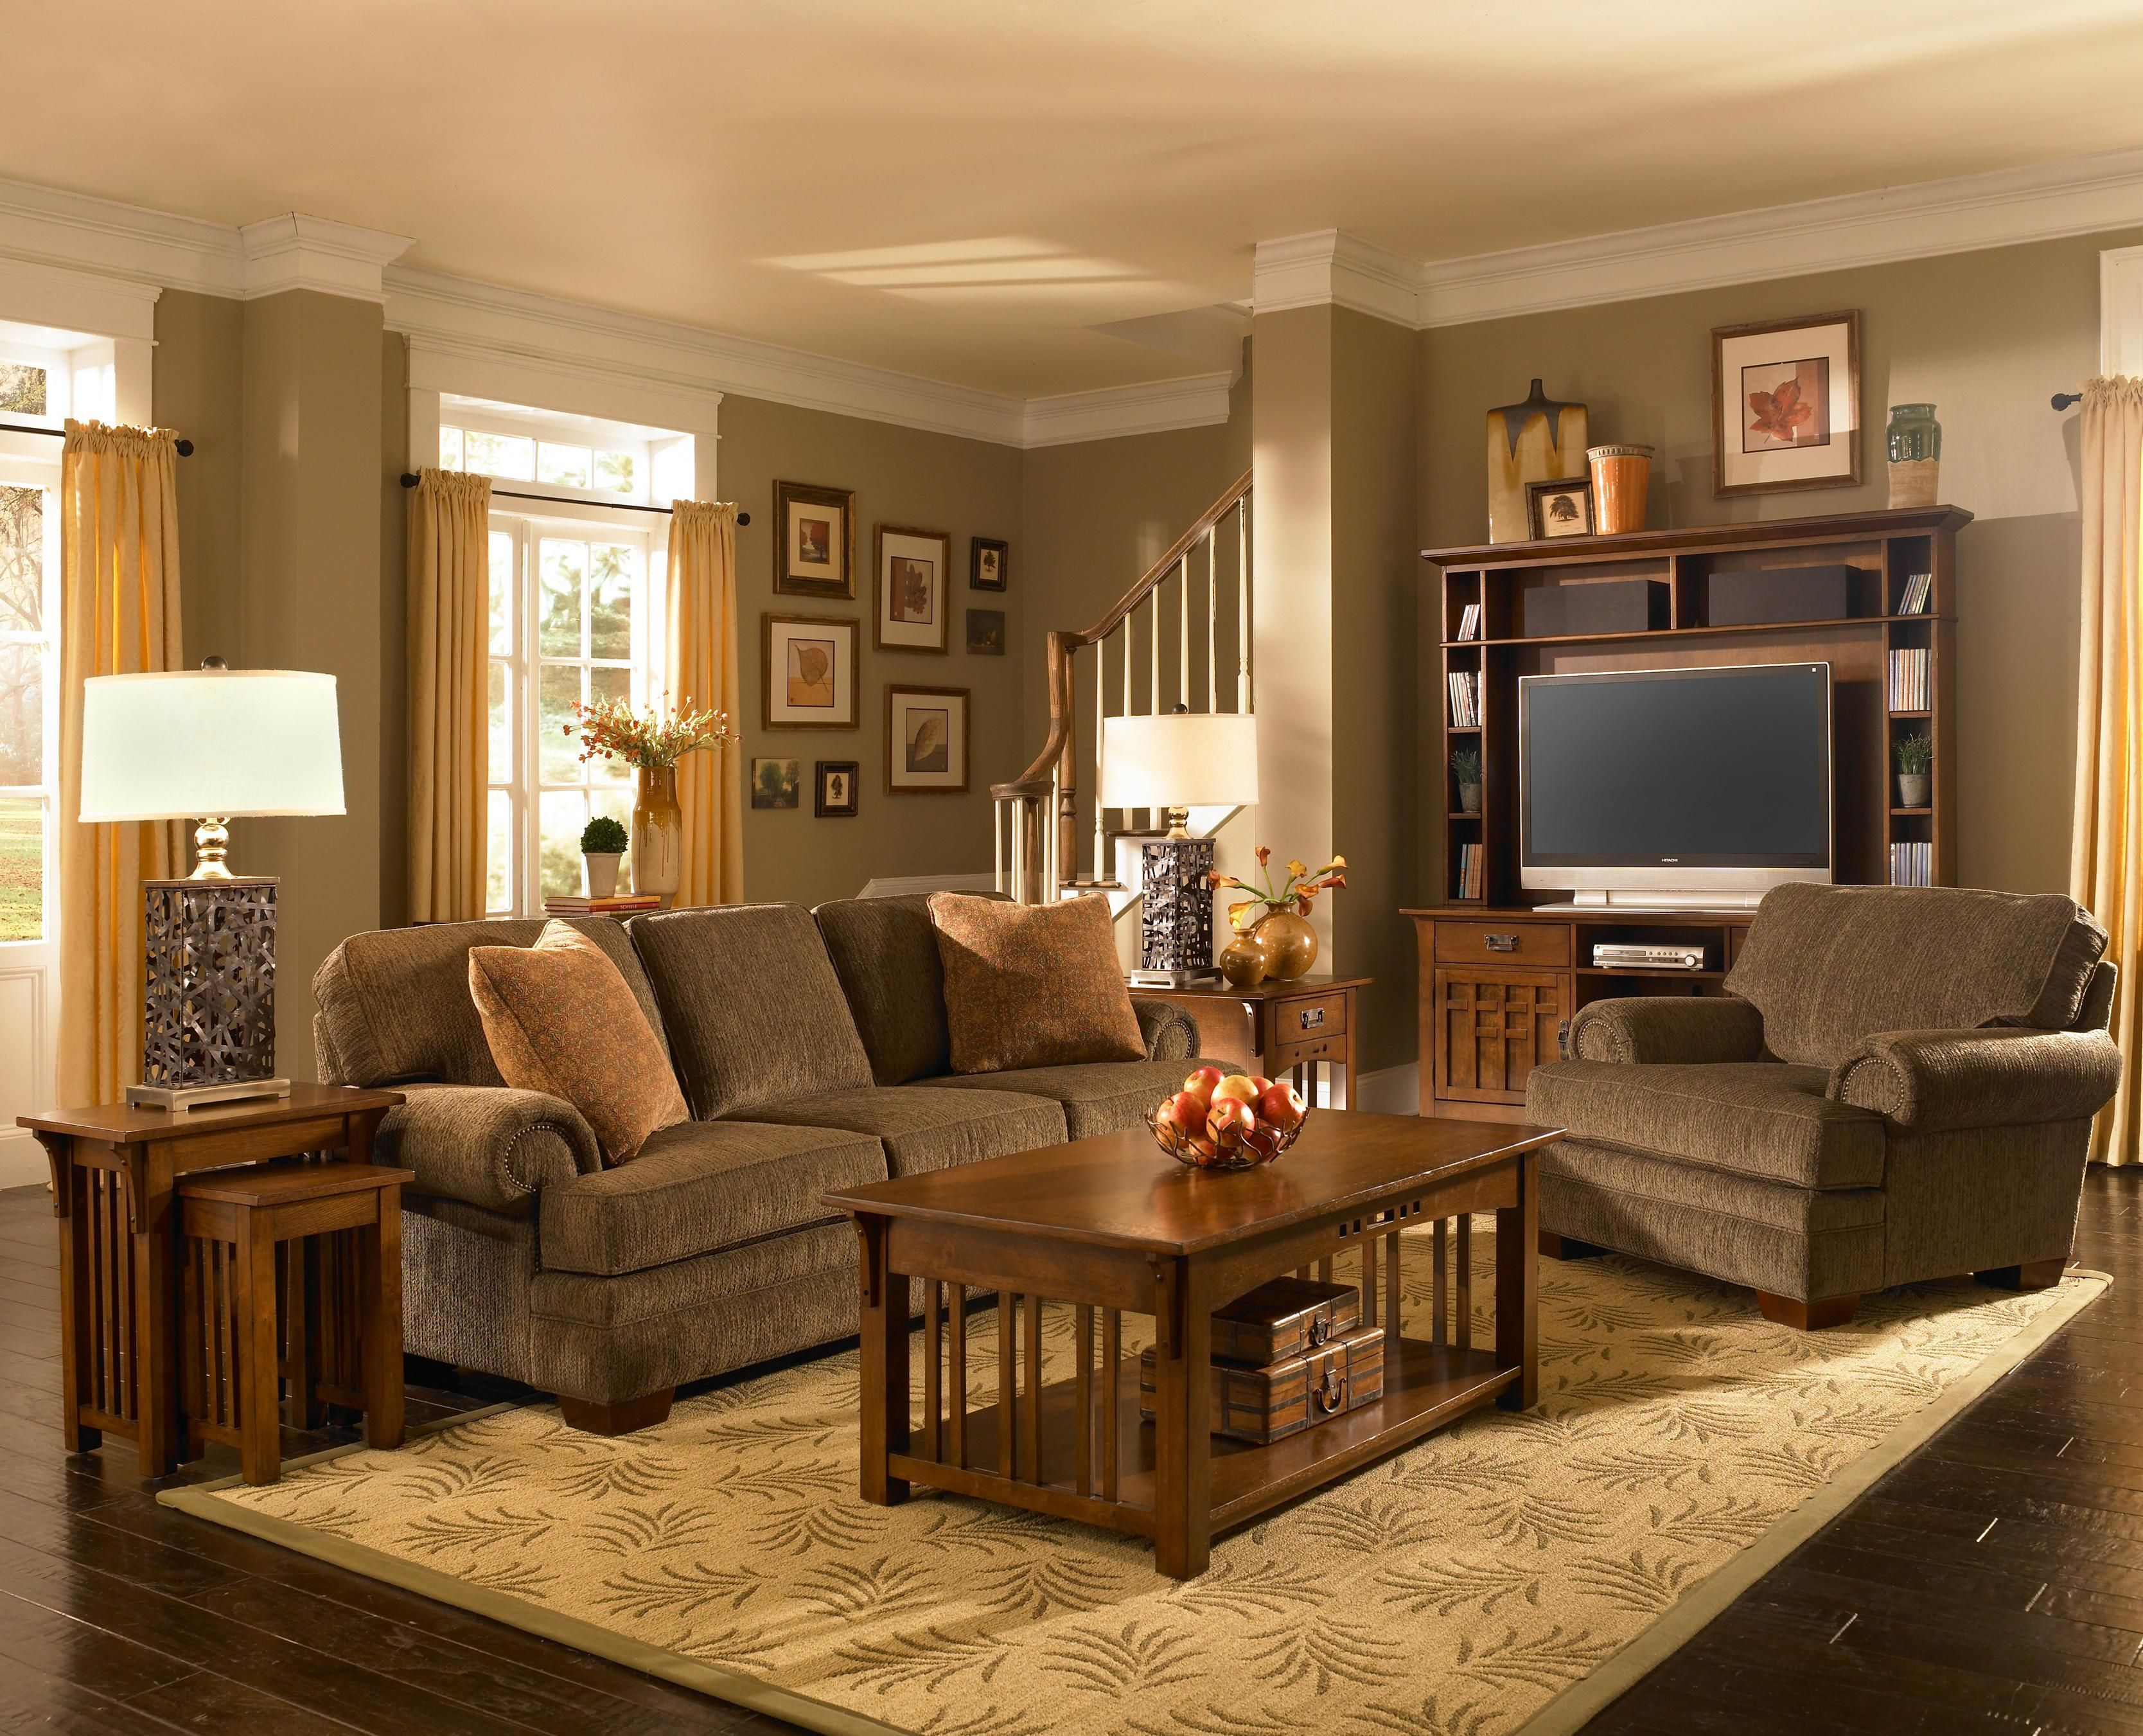 Thinking About Replacing My Two Couches With A Couch And Chair throughout 13 Some of the Coolest Ideas How to Make Mission Style Living Room Set